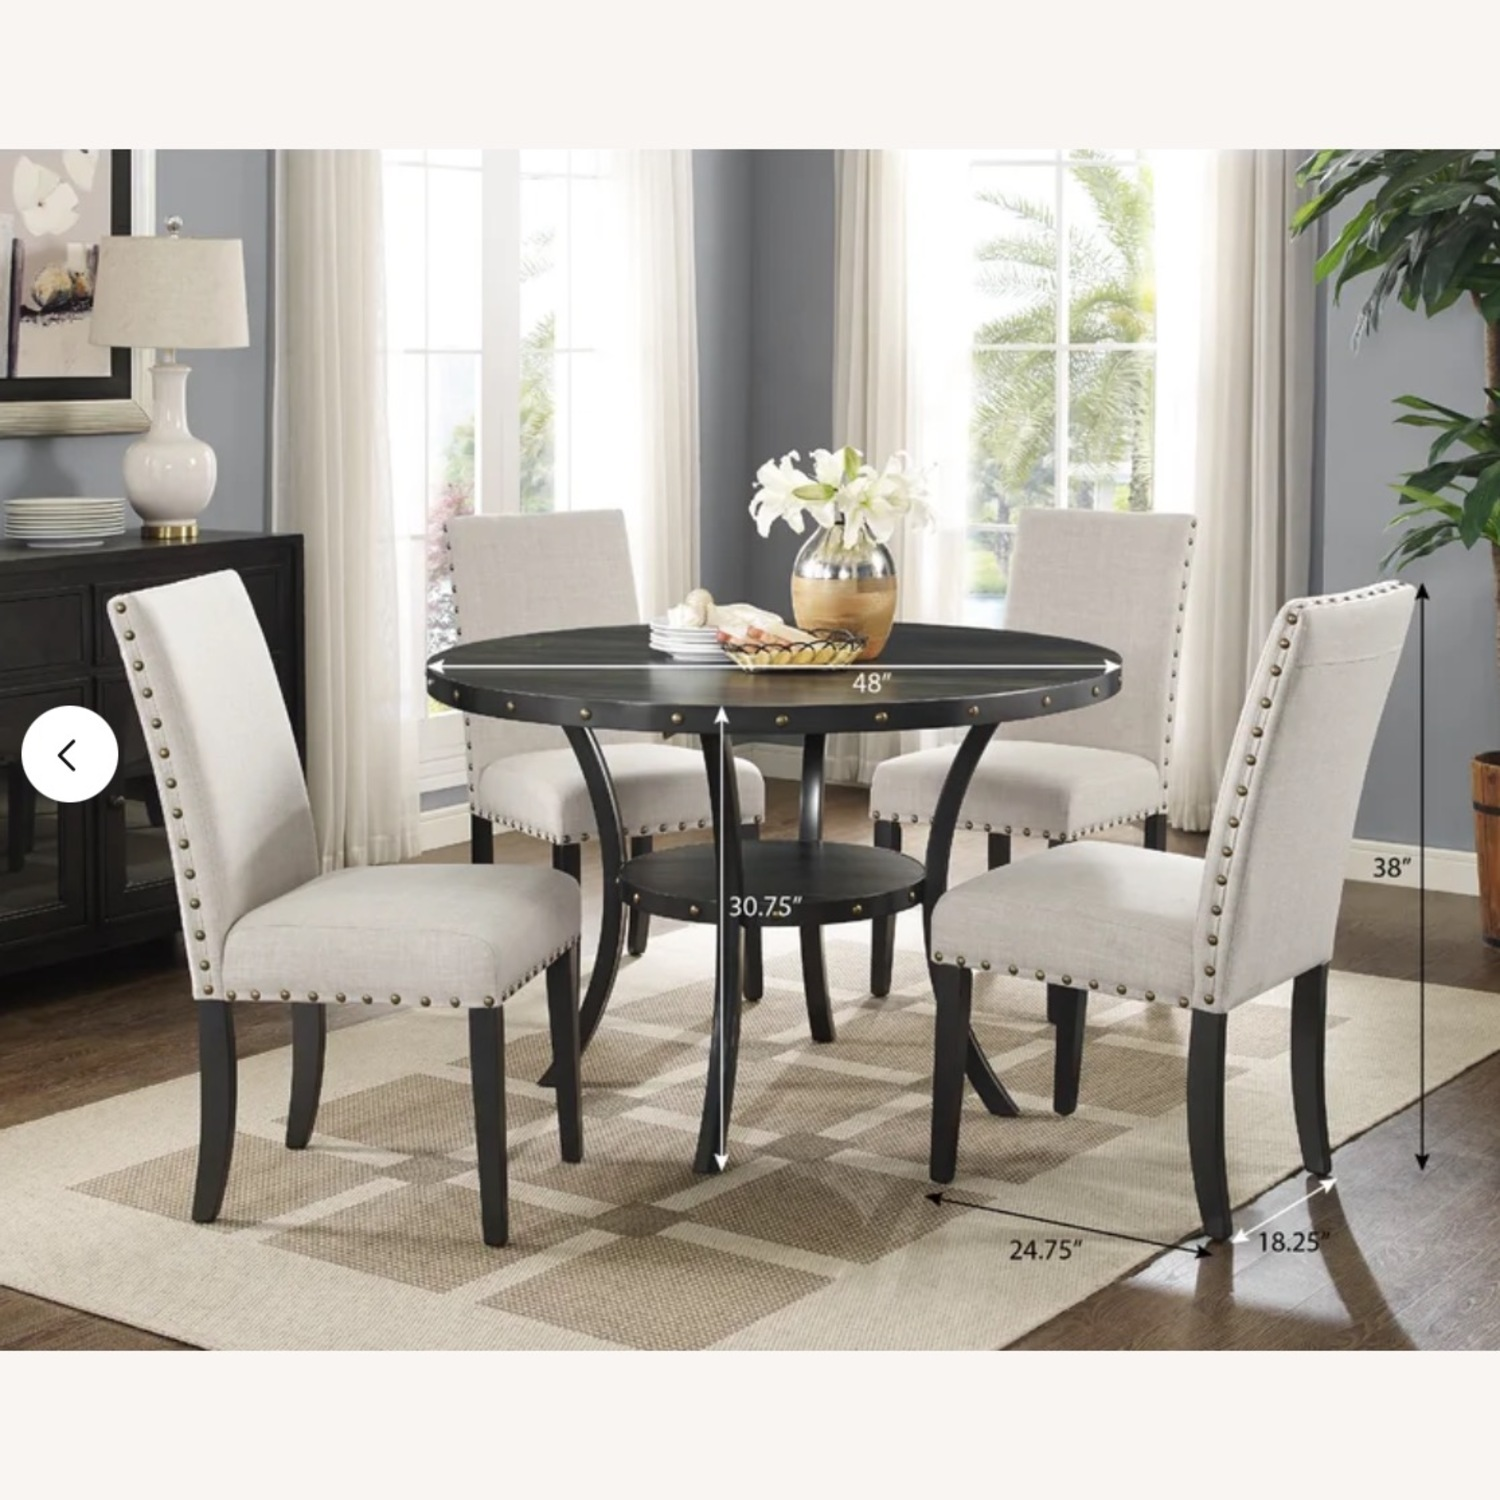 Wayfair Set of Gracie Oaks Upholstered Dining Chairs - image-7